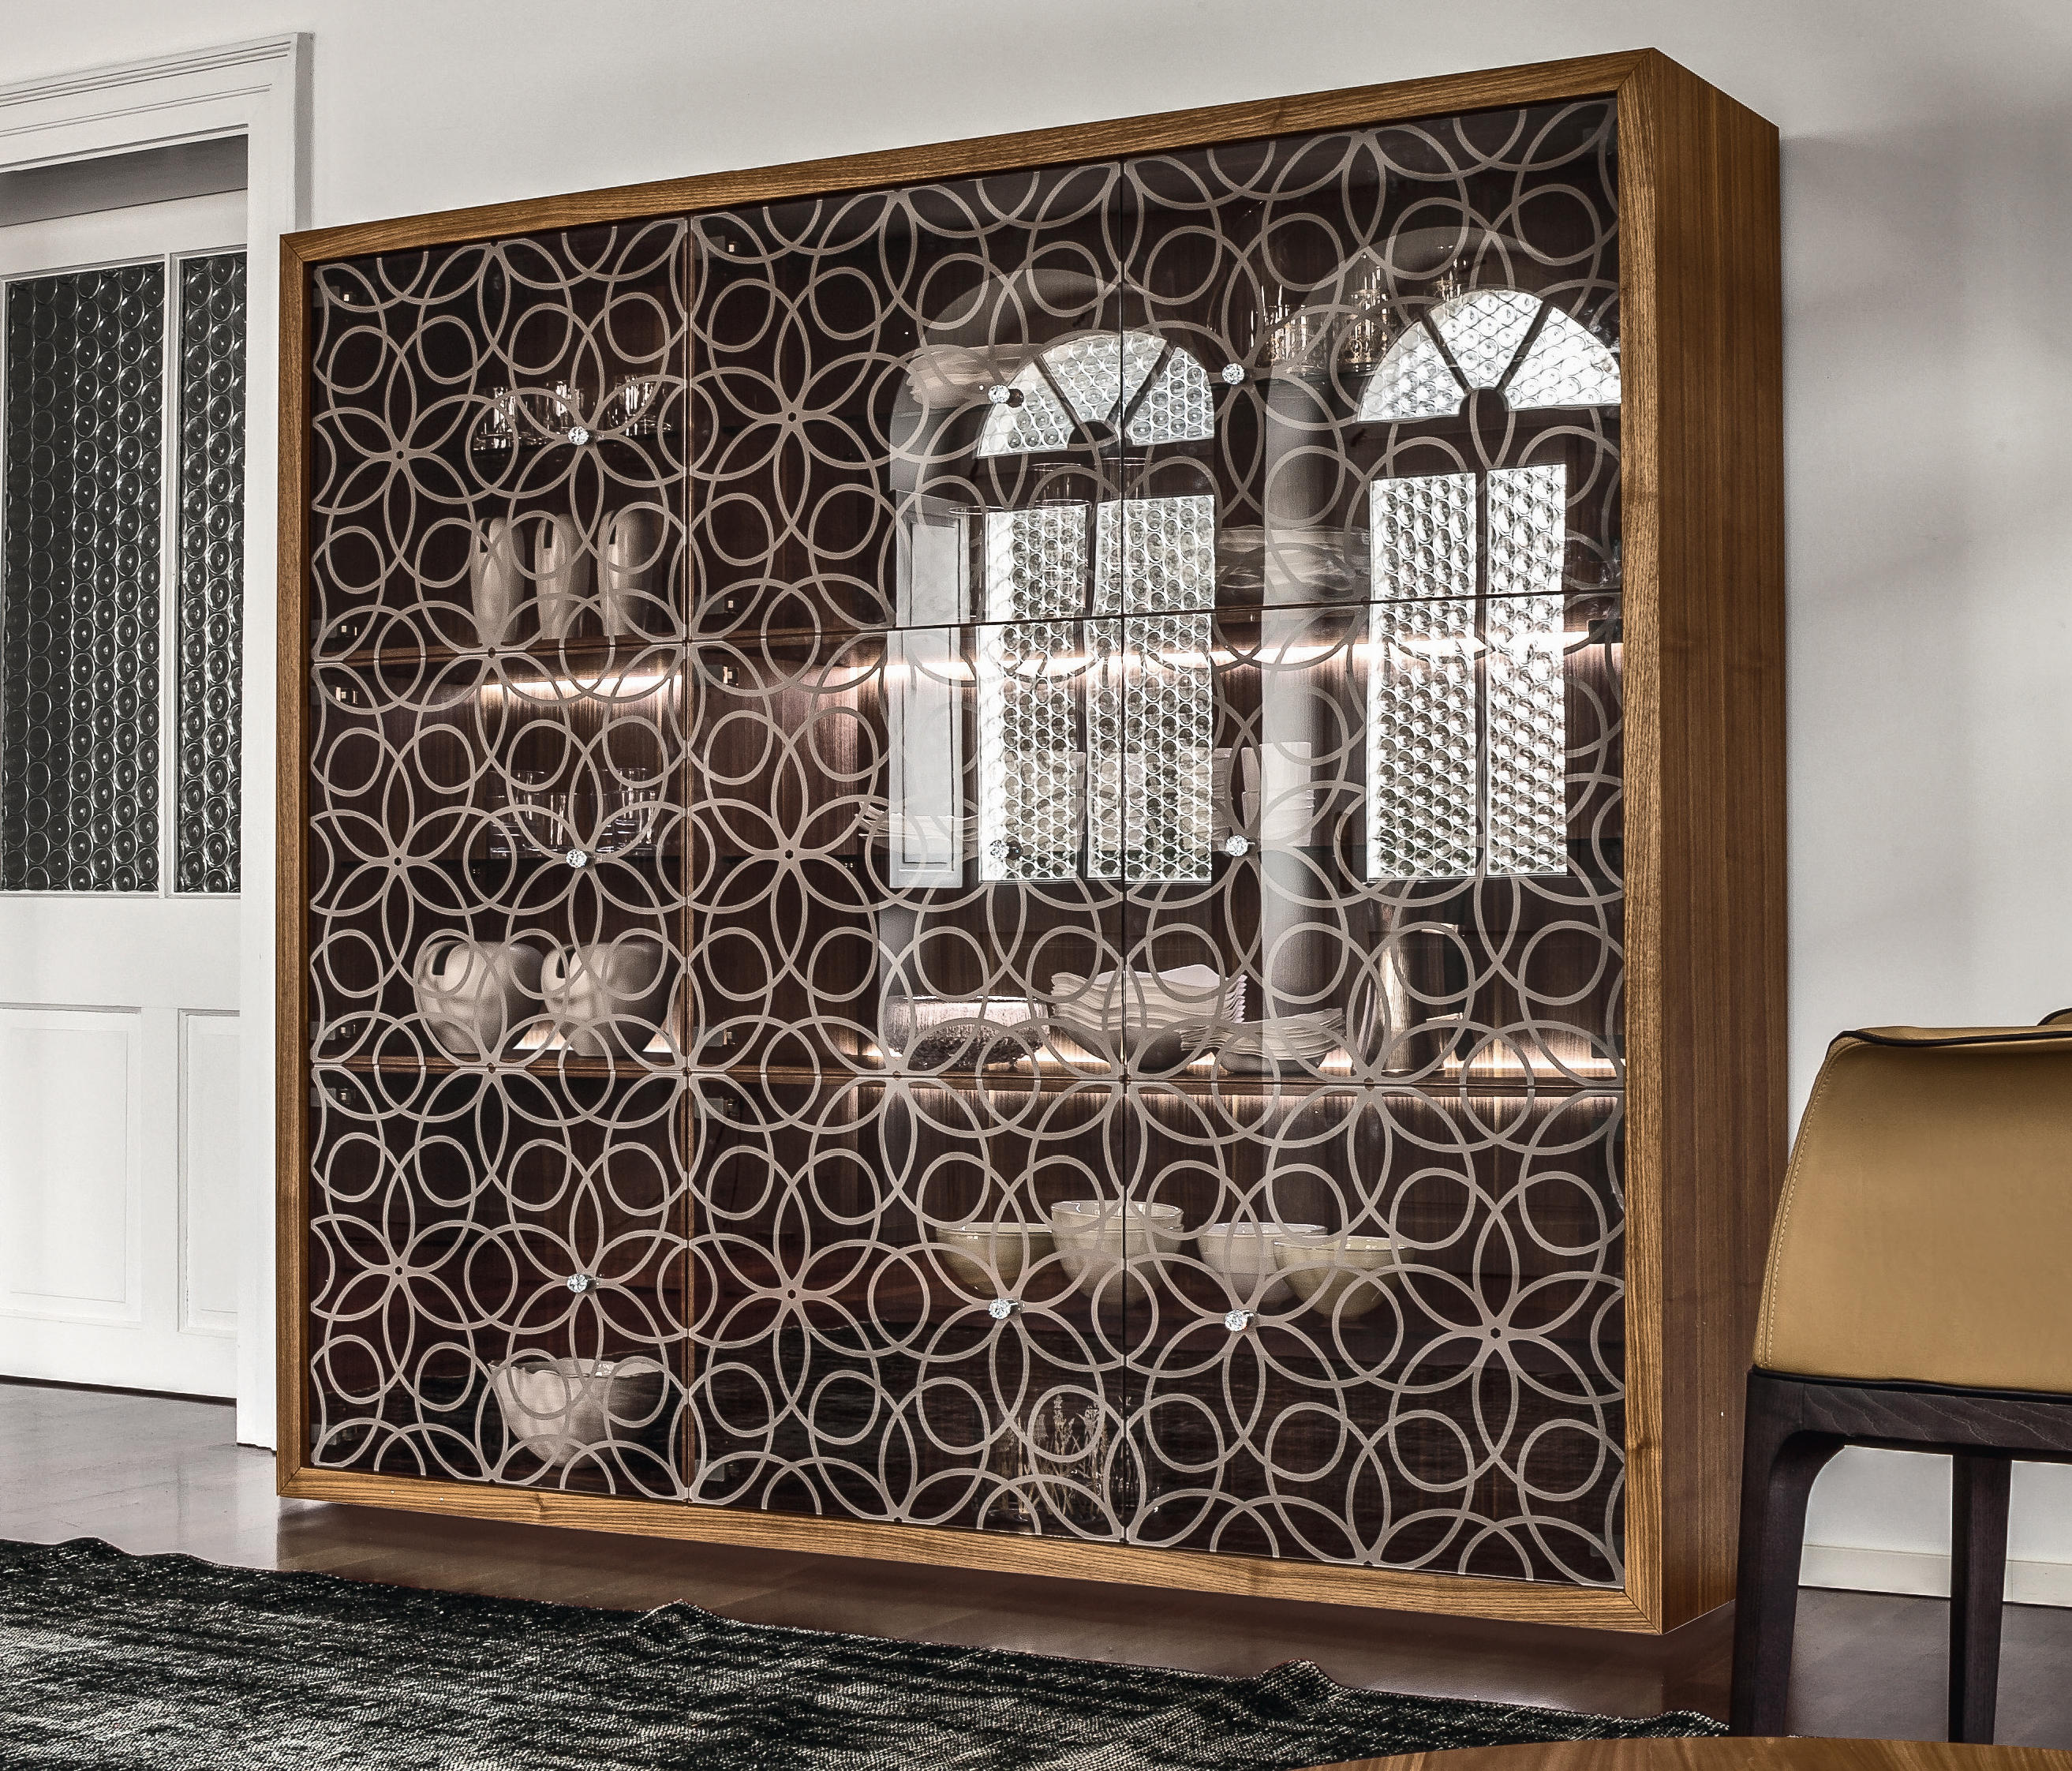 Granada display cabinets from tonin casa architonic - Casa de granada ...